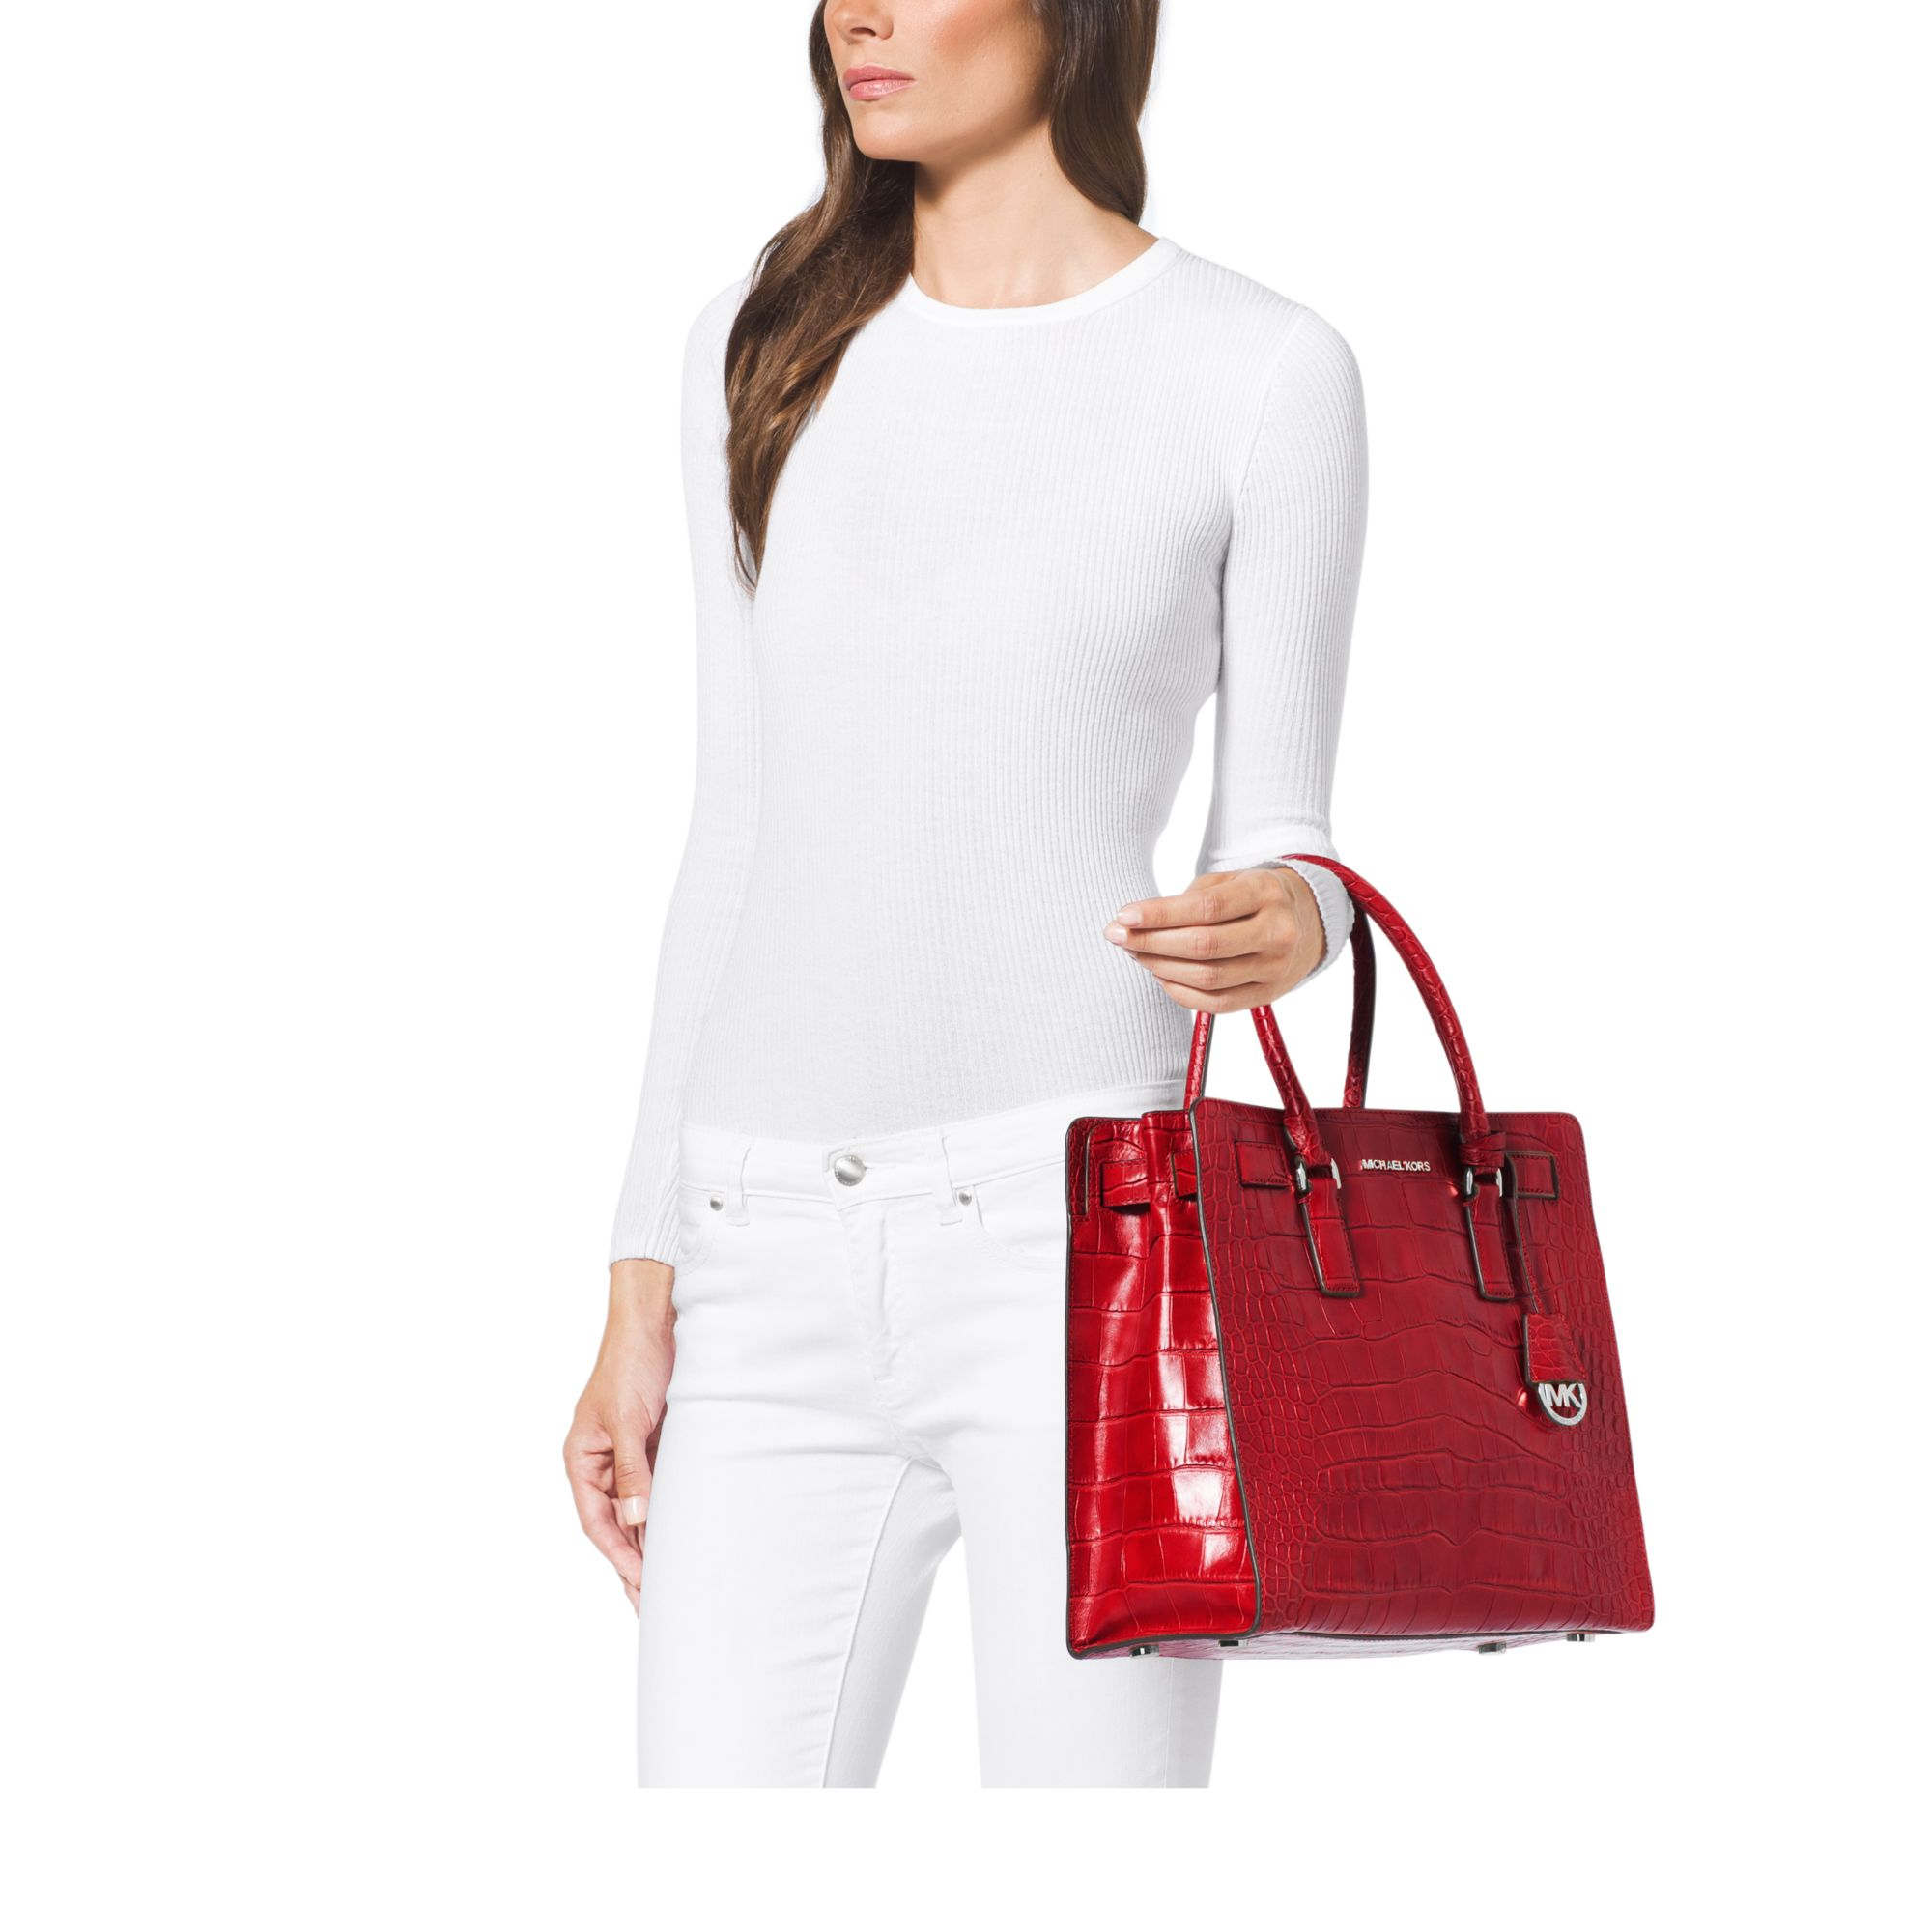 d45ebf0285bb Michael Kors Dillon Large Embossed-Leather Tote in Red - Lyst